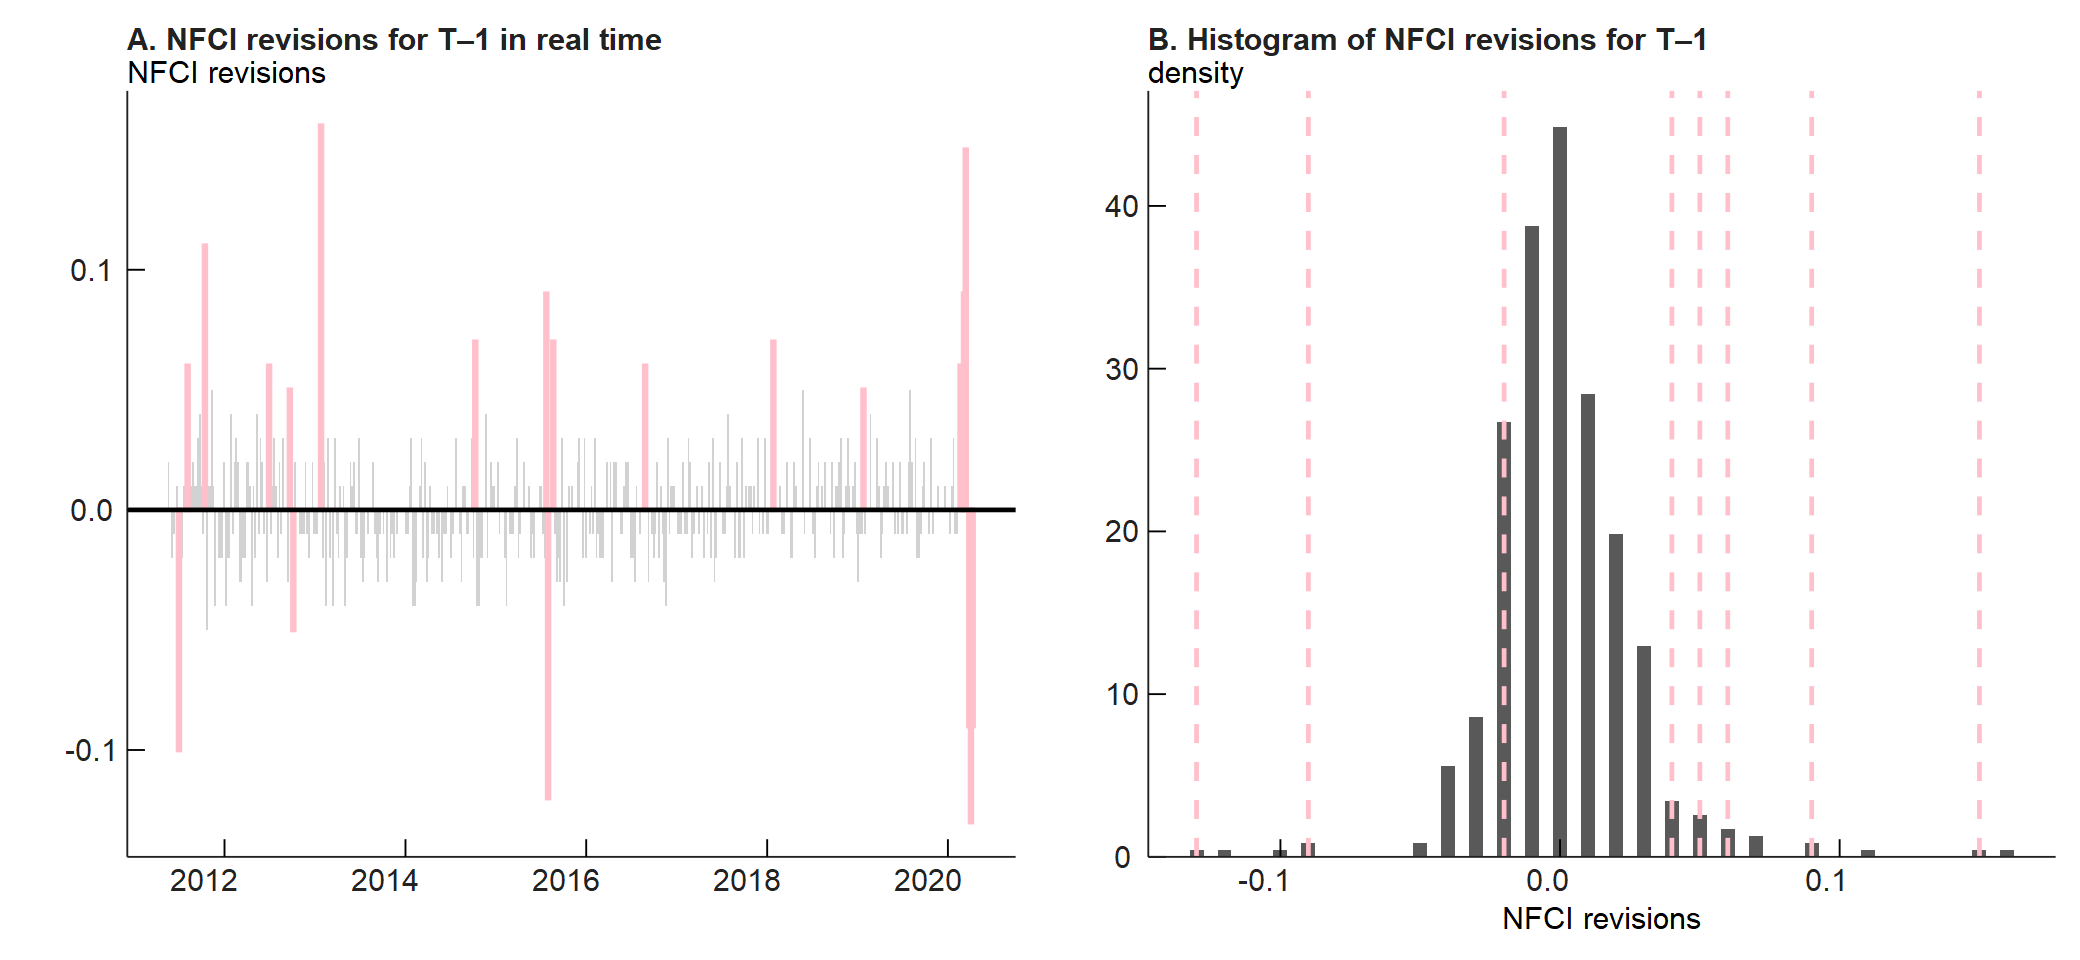 Panel A of figure 1 is a bar chart that plots the NFCI revision to the previous week's value in real time since May 2011. Pink bars highlight weeks when the absolute value of the revision was greater than 0.05. Panel B of figure 1 is a histogram chart that plots the density, or frequency distribution, of revisions to the previous week's NFCI values at the time of the release. The pink dashed lines correspond to recent revisions.